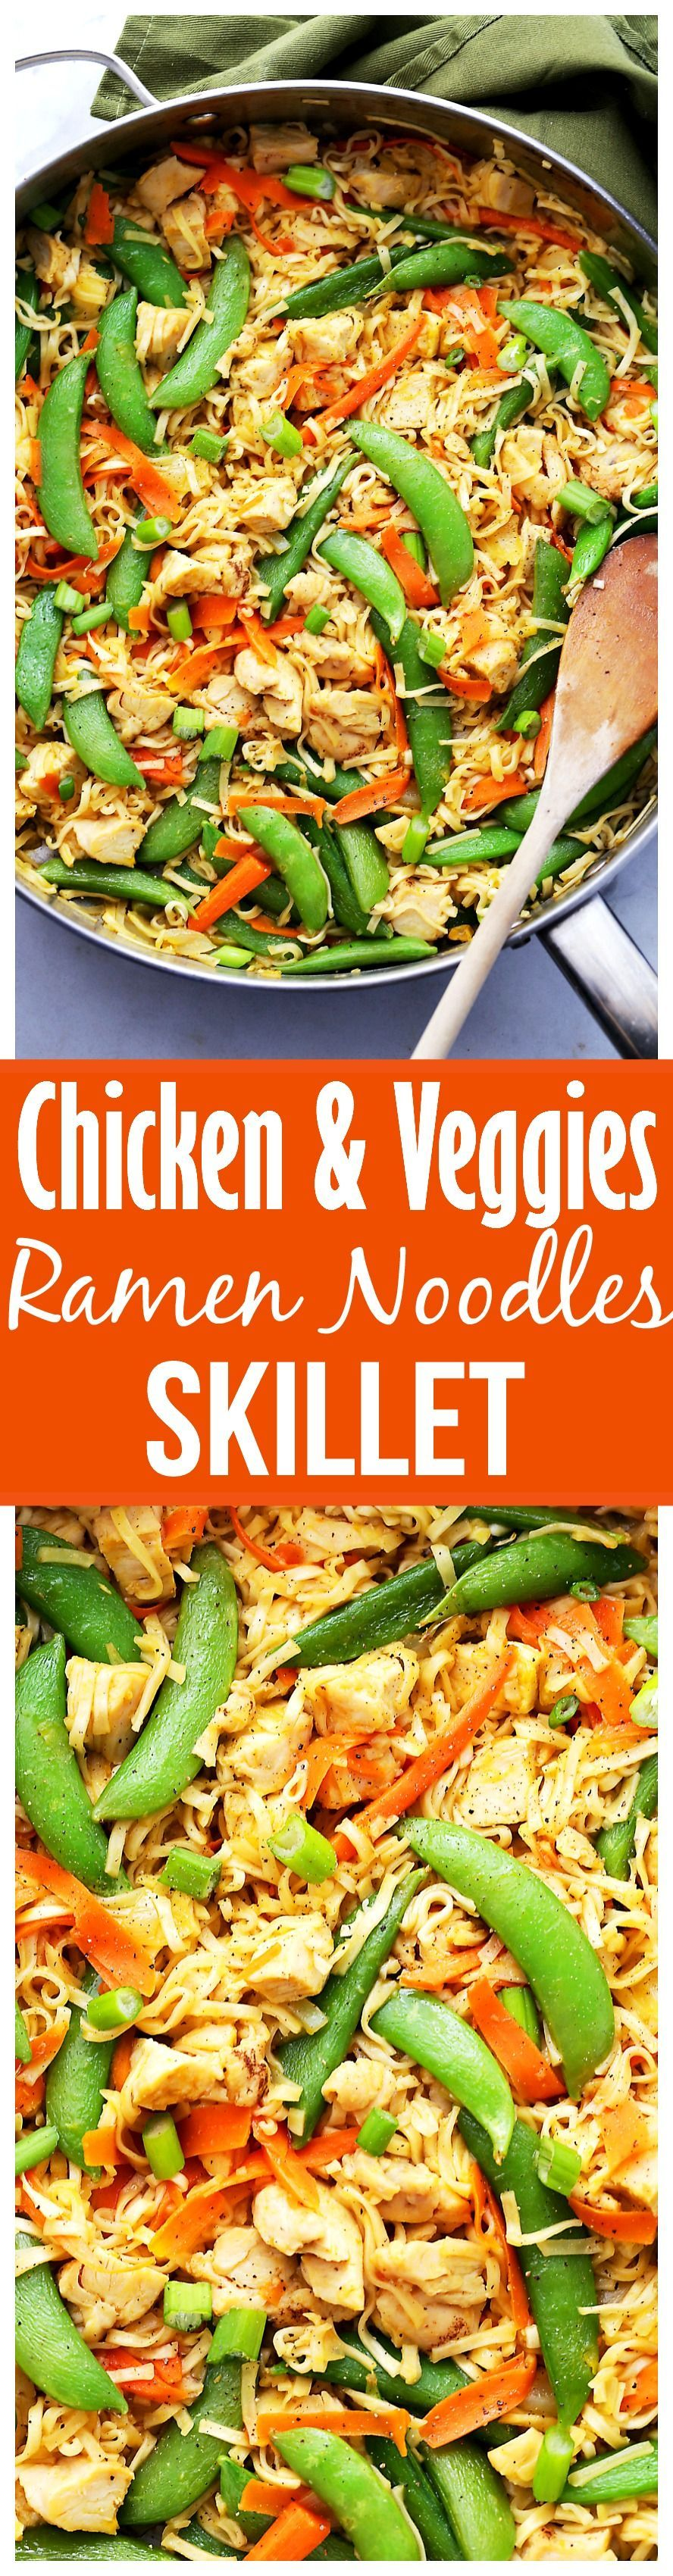 and Veggies Ramen Noodles Skillet – Delicious ramen noodles tossed with leftover chicken, carrots and snap peas make for an easy and super quick weeknight meal.Chicken and Veggies Ramen Noodles Skillet – Delicious ramen noodles tossed with leftover chicken, carrots and snap peas make for an easy and super quick weeknight meal.